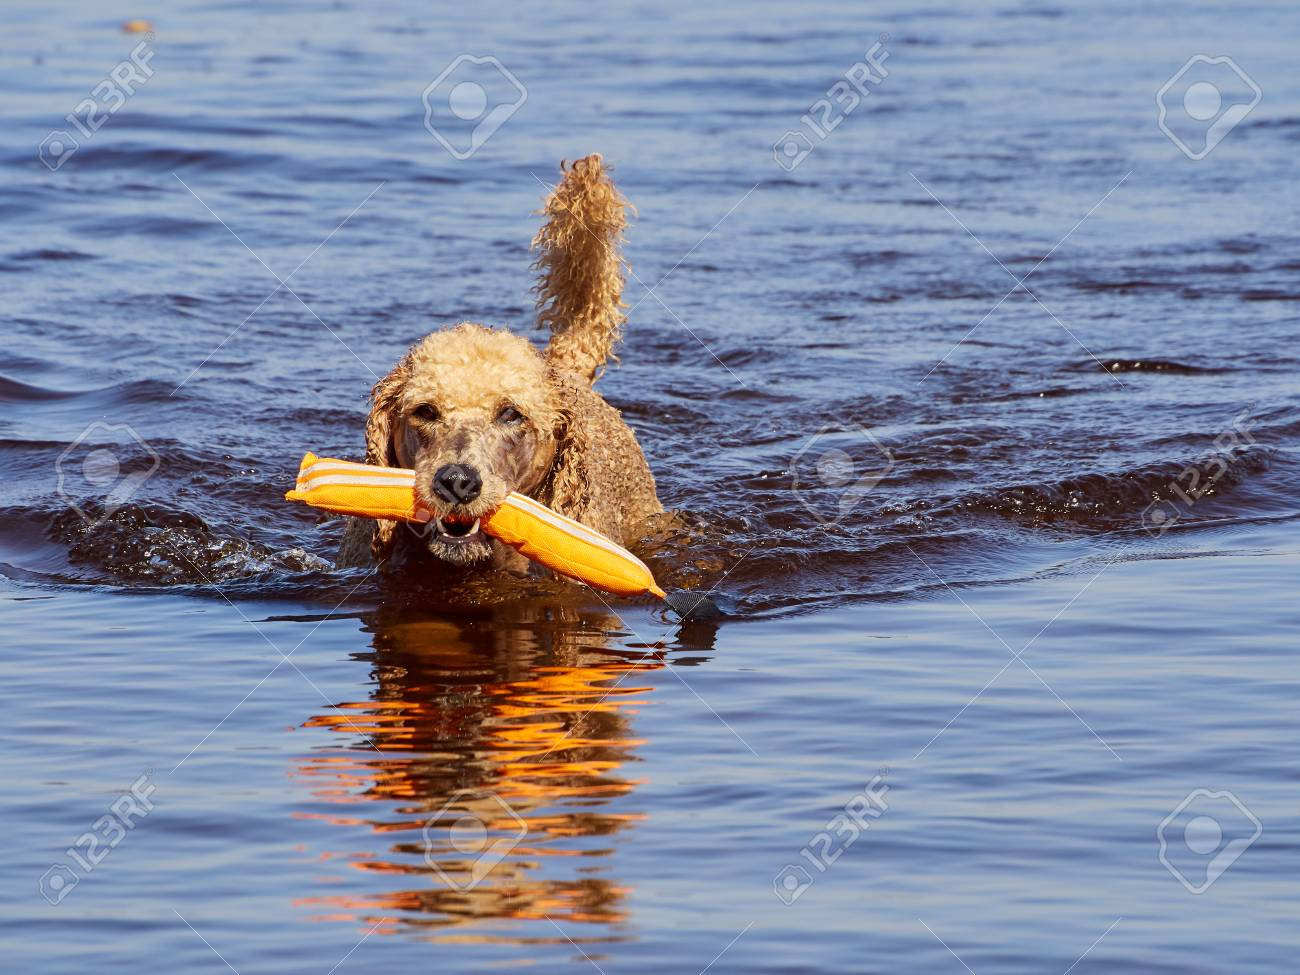 Standard poodle swimming on dog rescue service water training